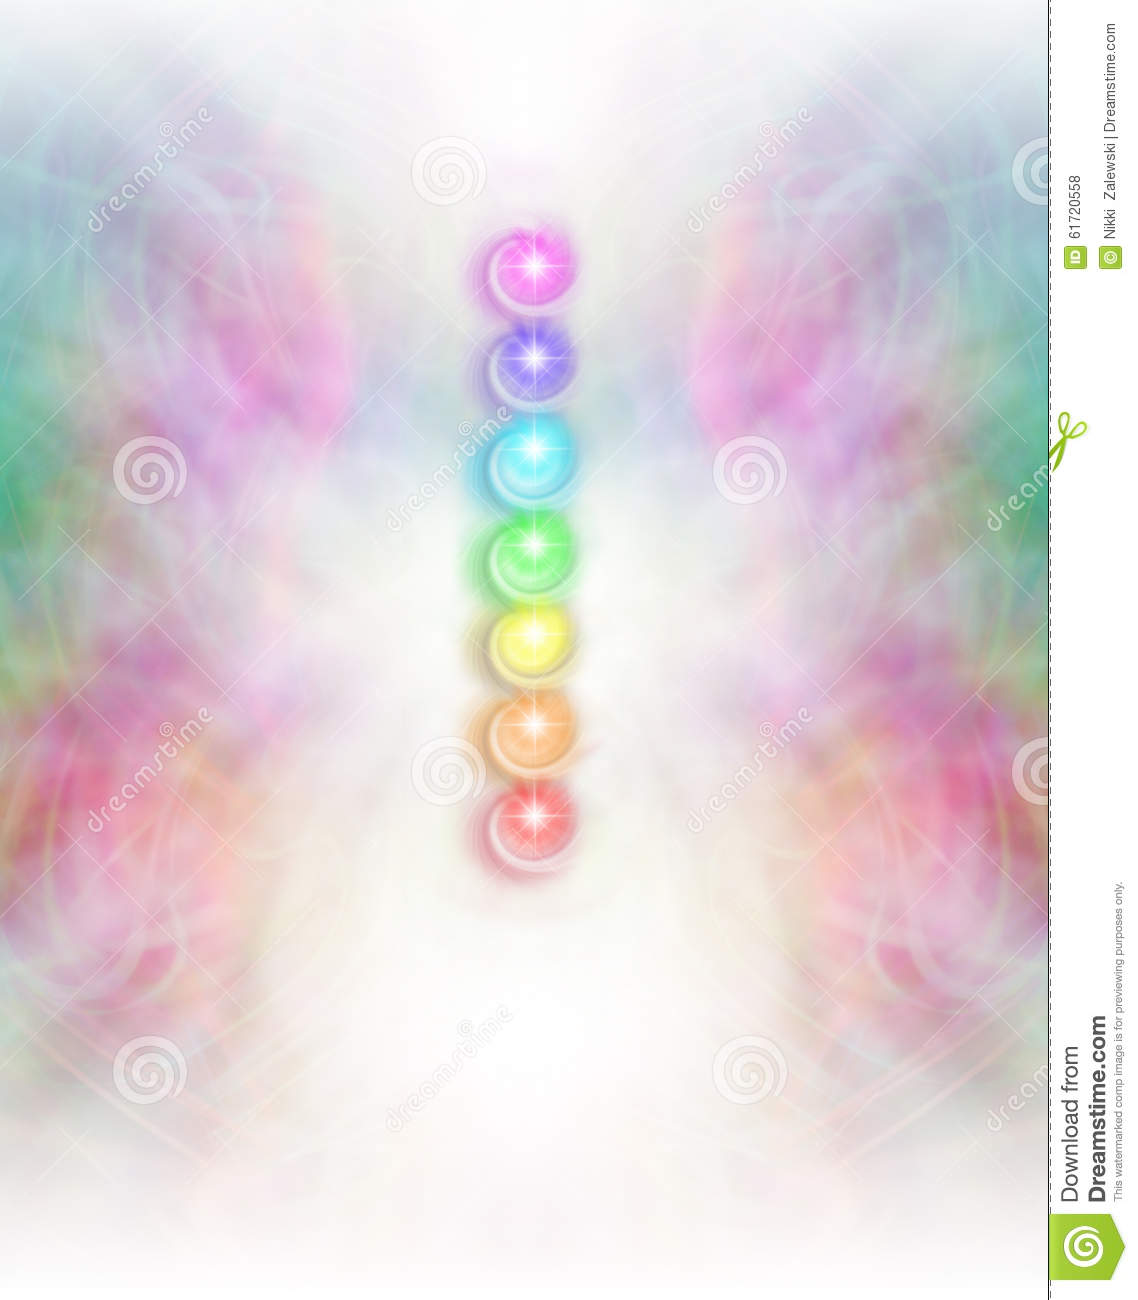 chakra map with Stock Illustration Seven Chakras Subtle Energy Field Background Symmetrical Intricate Pastel Colored Lace Pattern Vertical Row Chakra Image61720558 on 2212113022 also Paddle And Pedal Bears Ears National Monument additionally Stock Photography Ganesha Painting Hindu God Multicolor Image34252542 in addition Newsletter411 further Naruto.